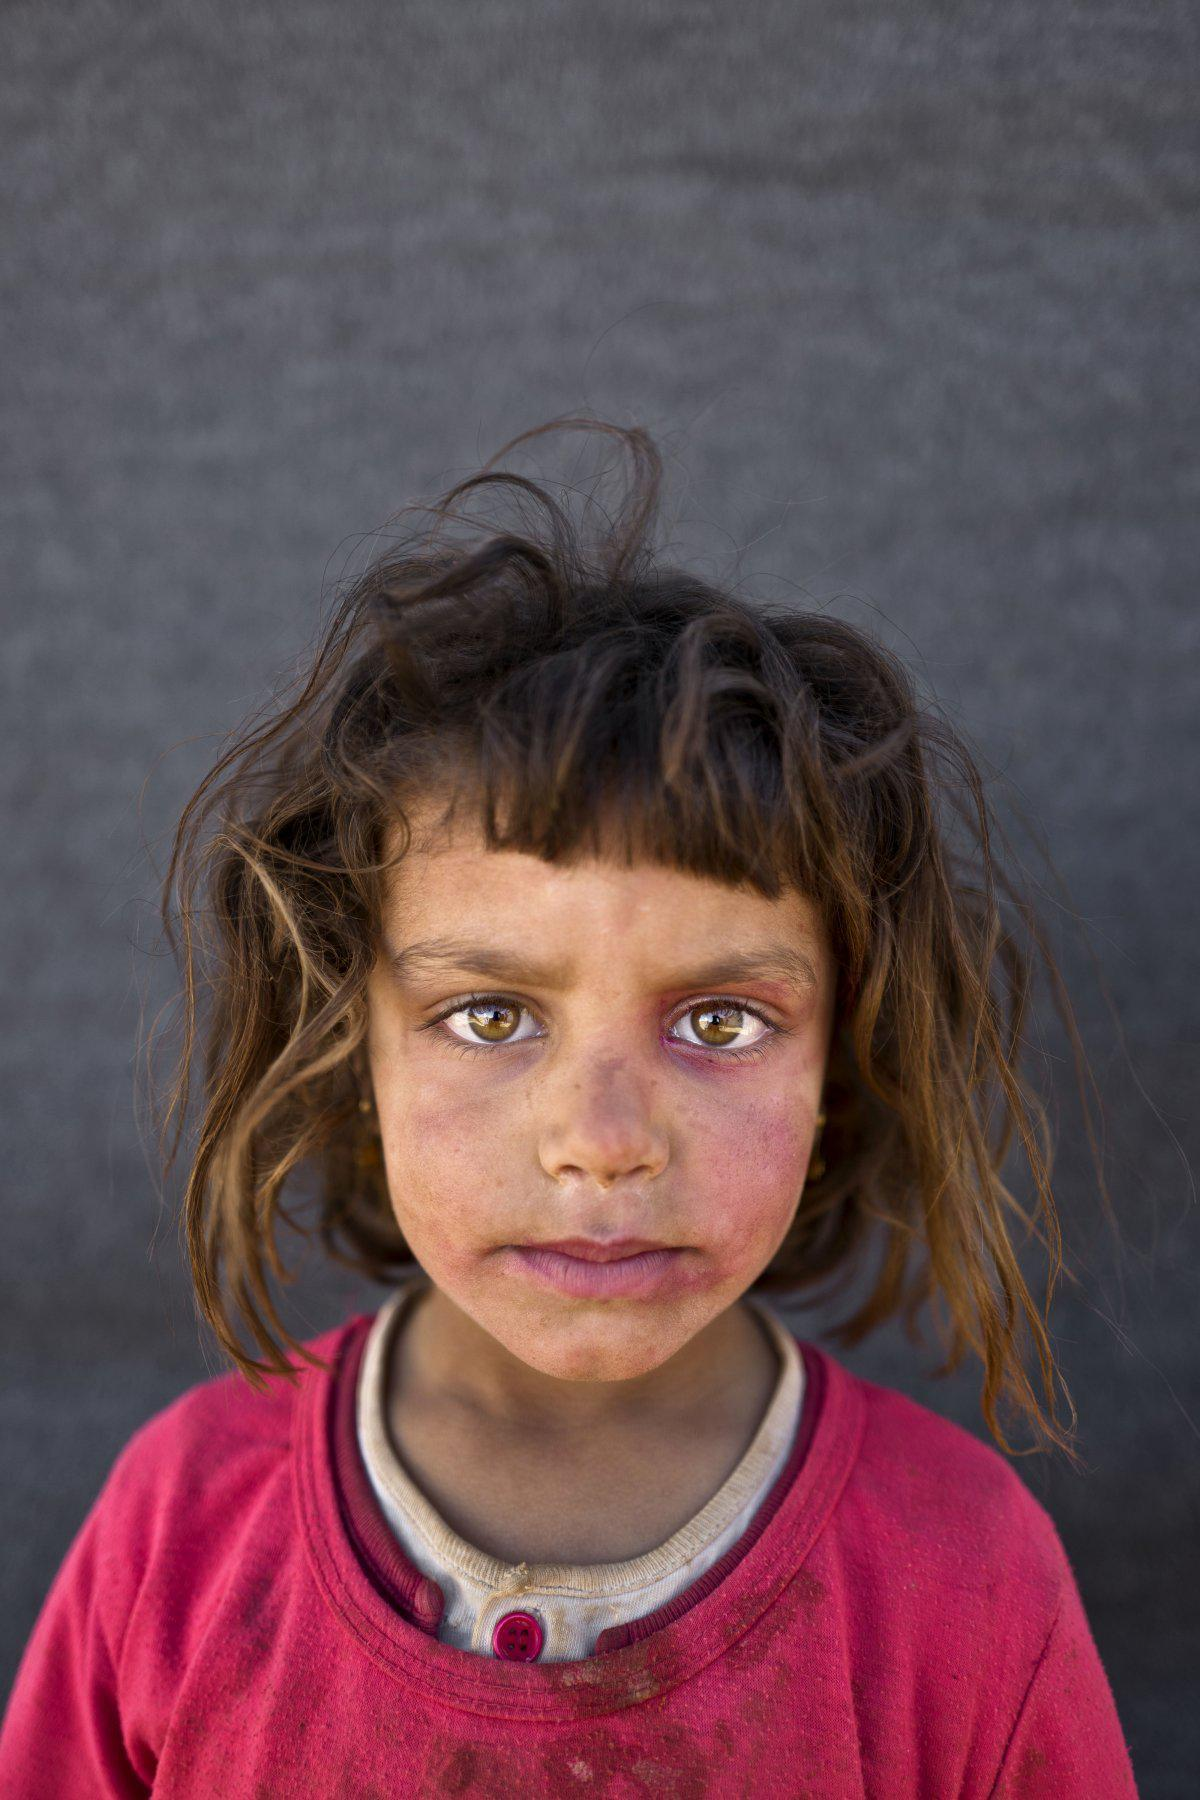 i-want-to-go-back-to-syria-but-my-father-told-us-that-he-wants-to-go-to-the-united-states-of-america--mona-emad-5-from-hassakeh